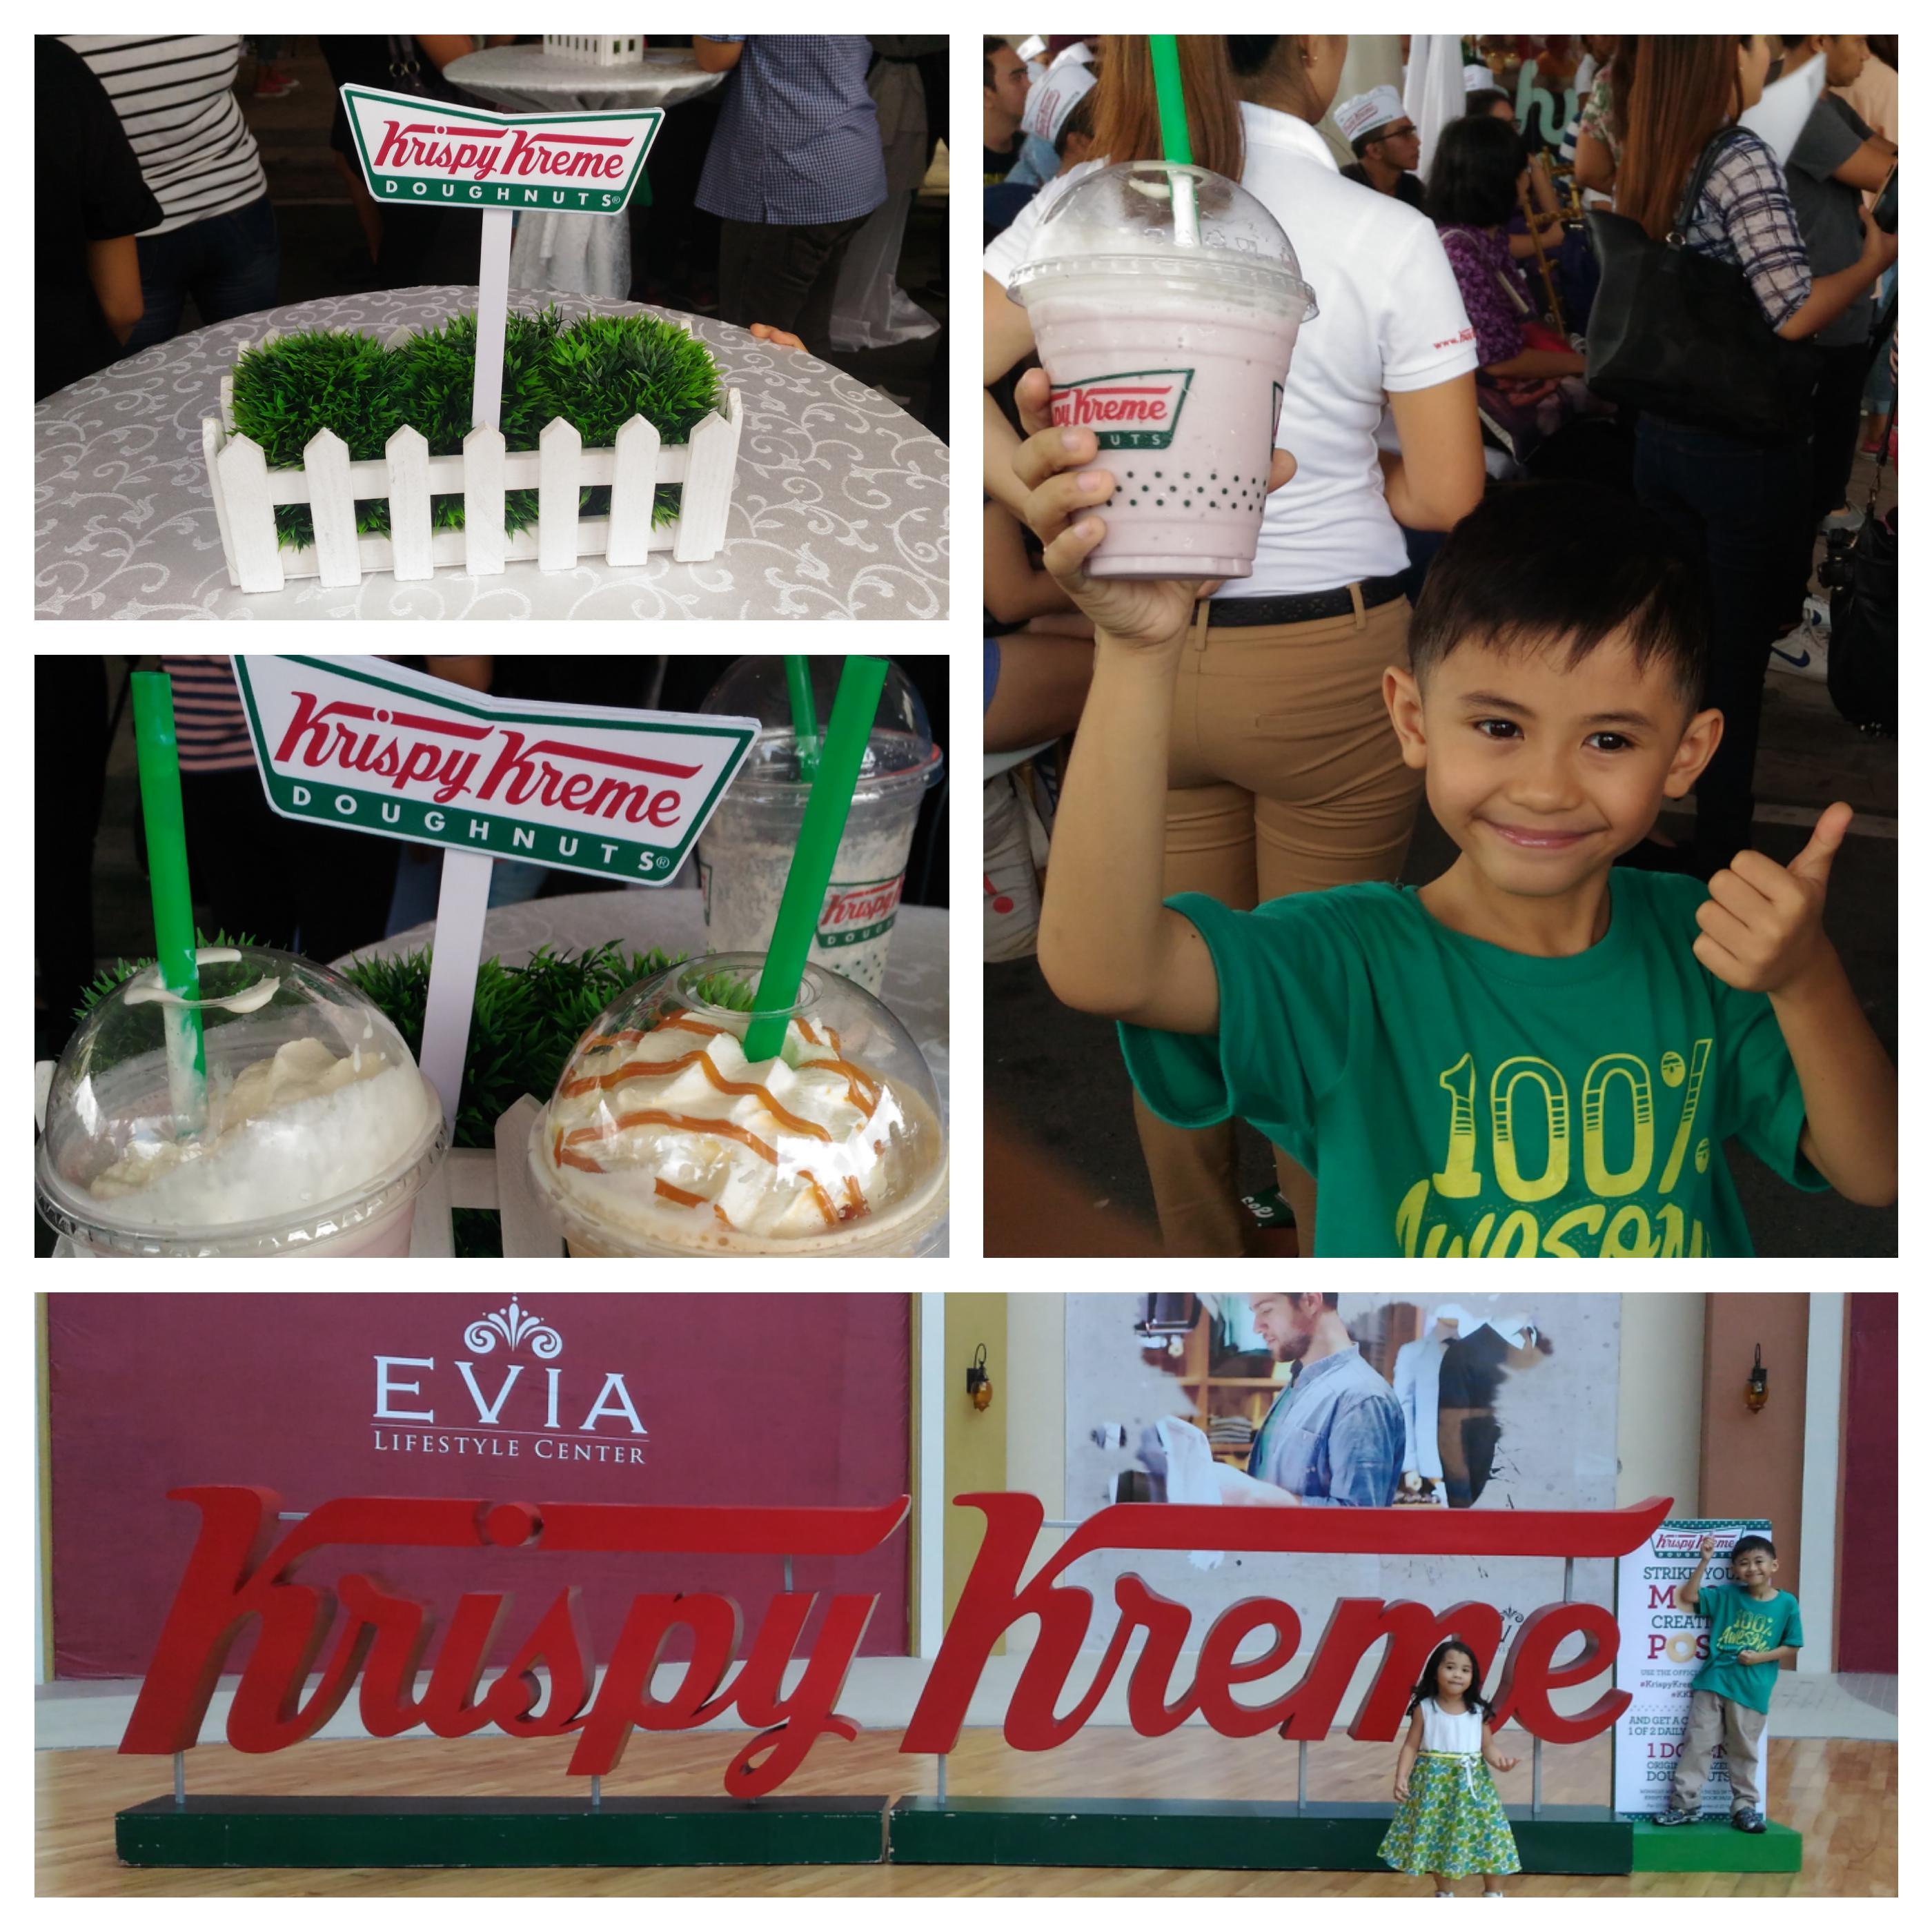 Krispy Kreme Evia with Mommy Jem's kids